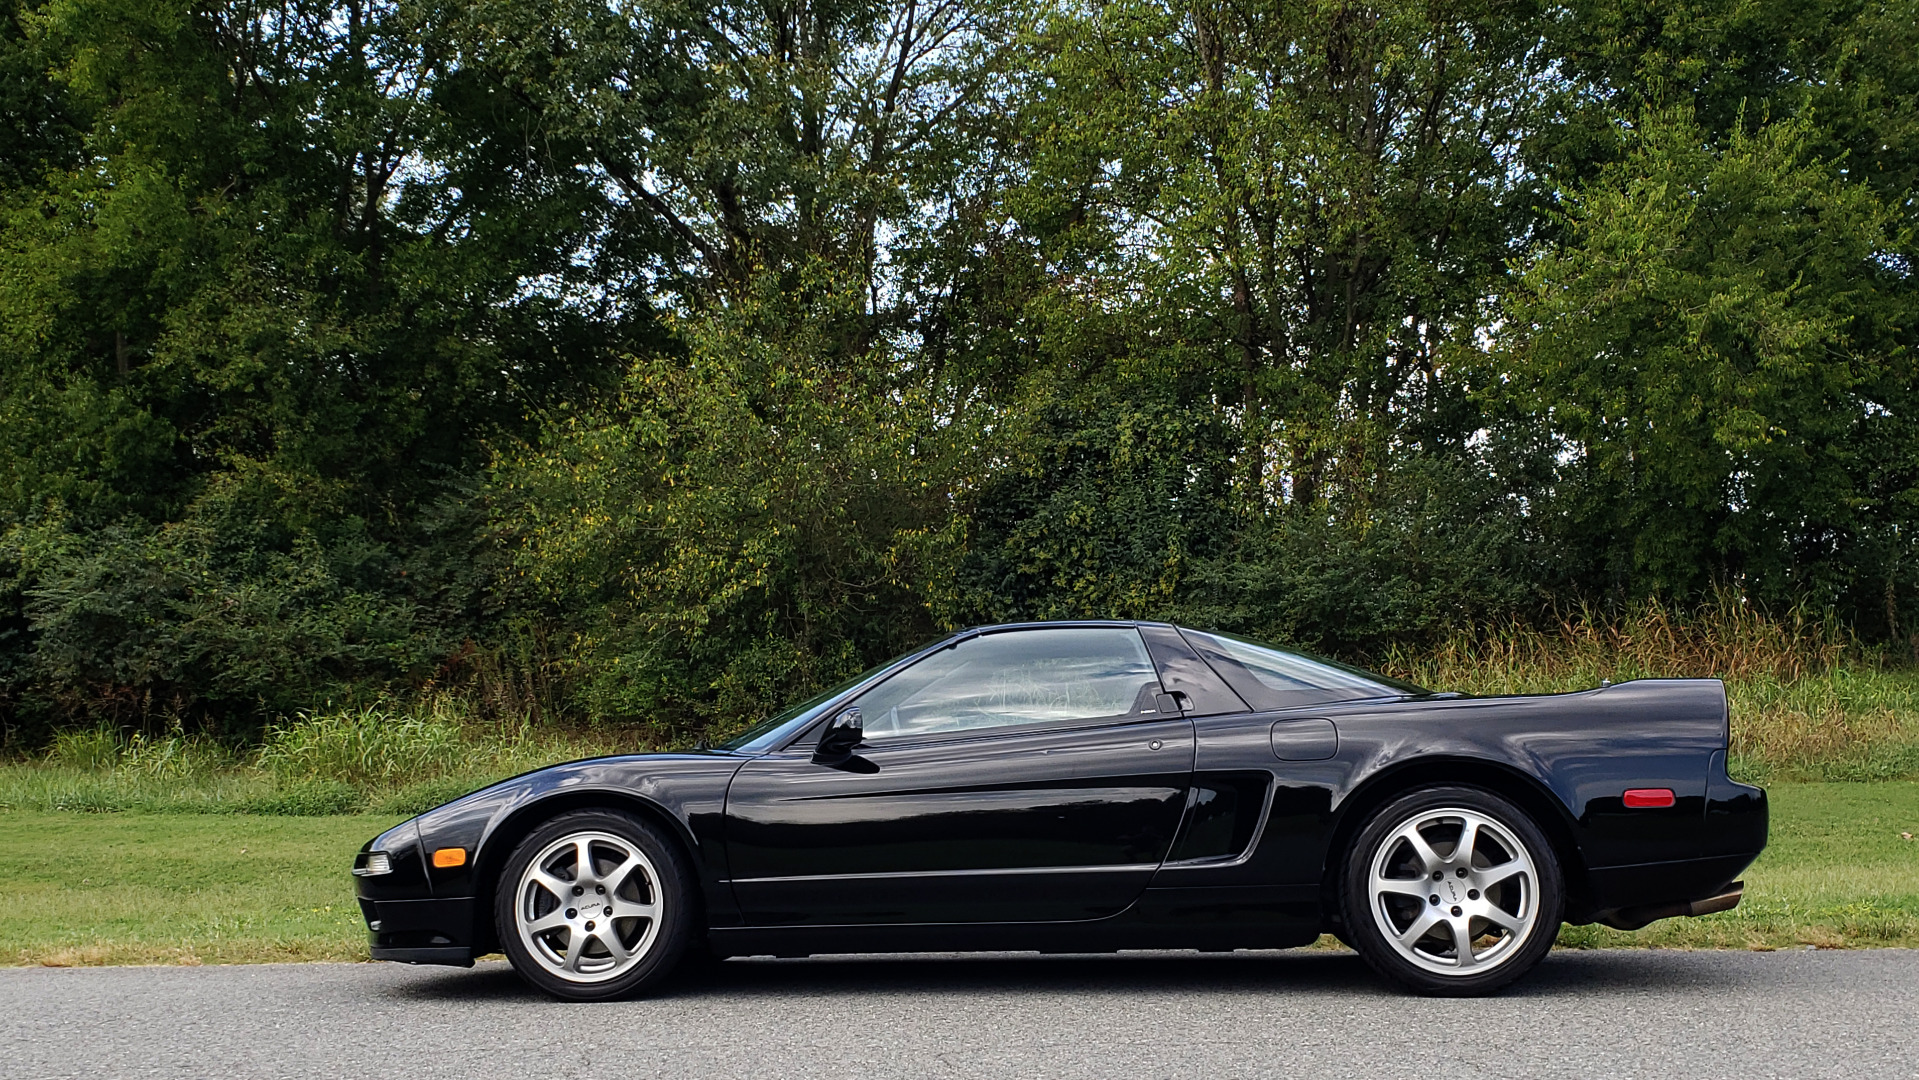 Used 1995 Acura NSX OPEN TOP / 5-SPD MAN / LOW MILES / SUPER CLEAN for sale Sold at Formula Imports in Charlotte NC 28227 8